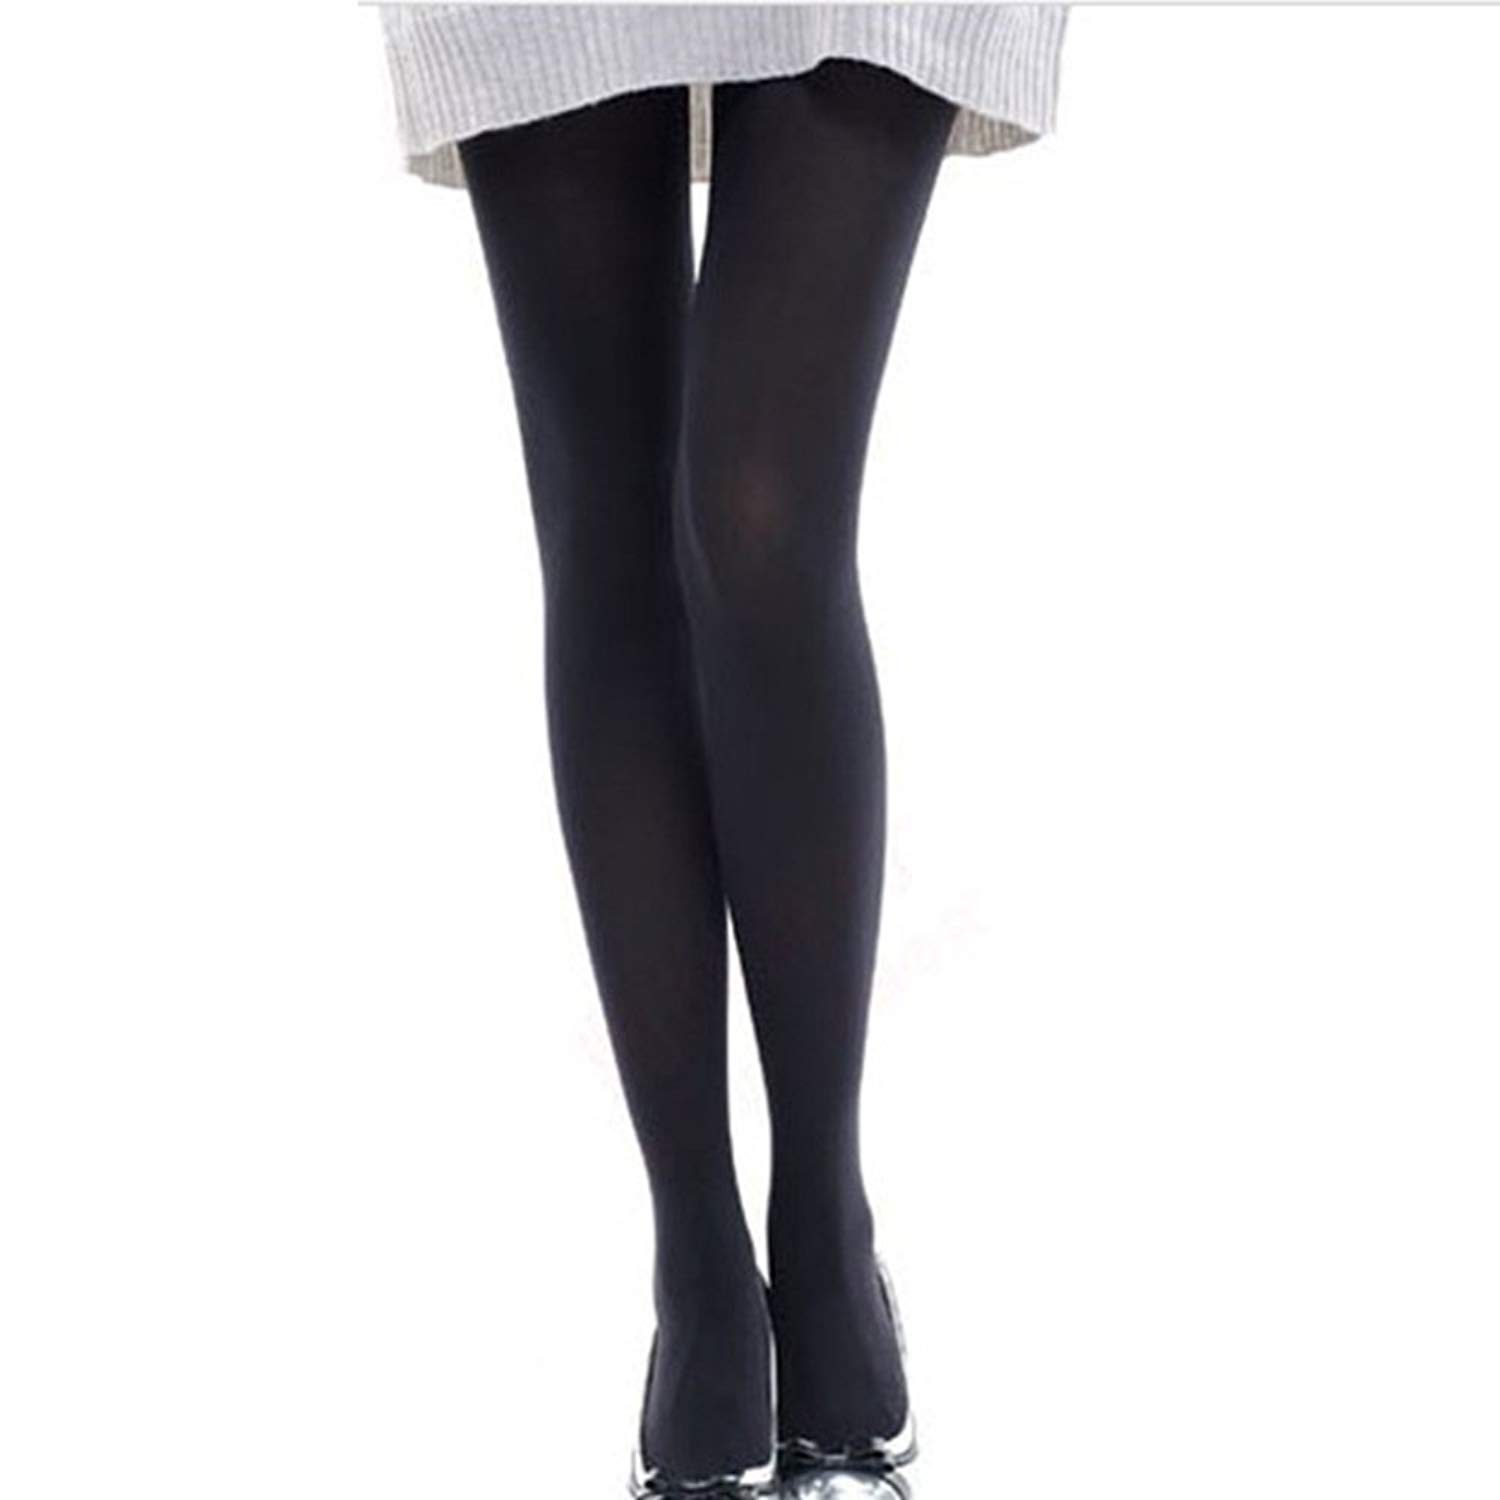 6c31bcc2863 Get Quotations · Vinmax New Women s Microfibre Tights Velvet Pantyhose  Opaque Tights with Control-Top Black